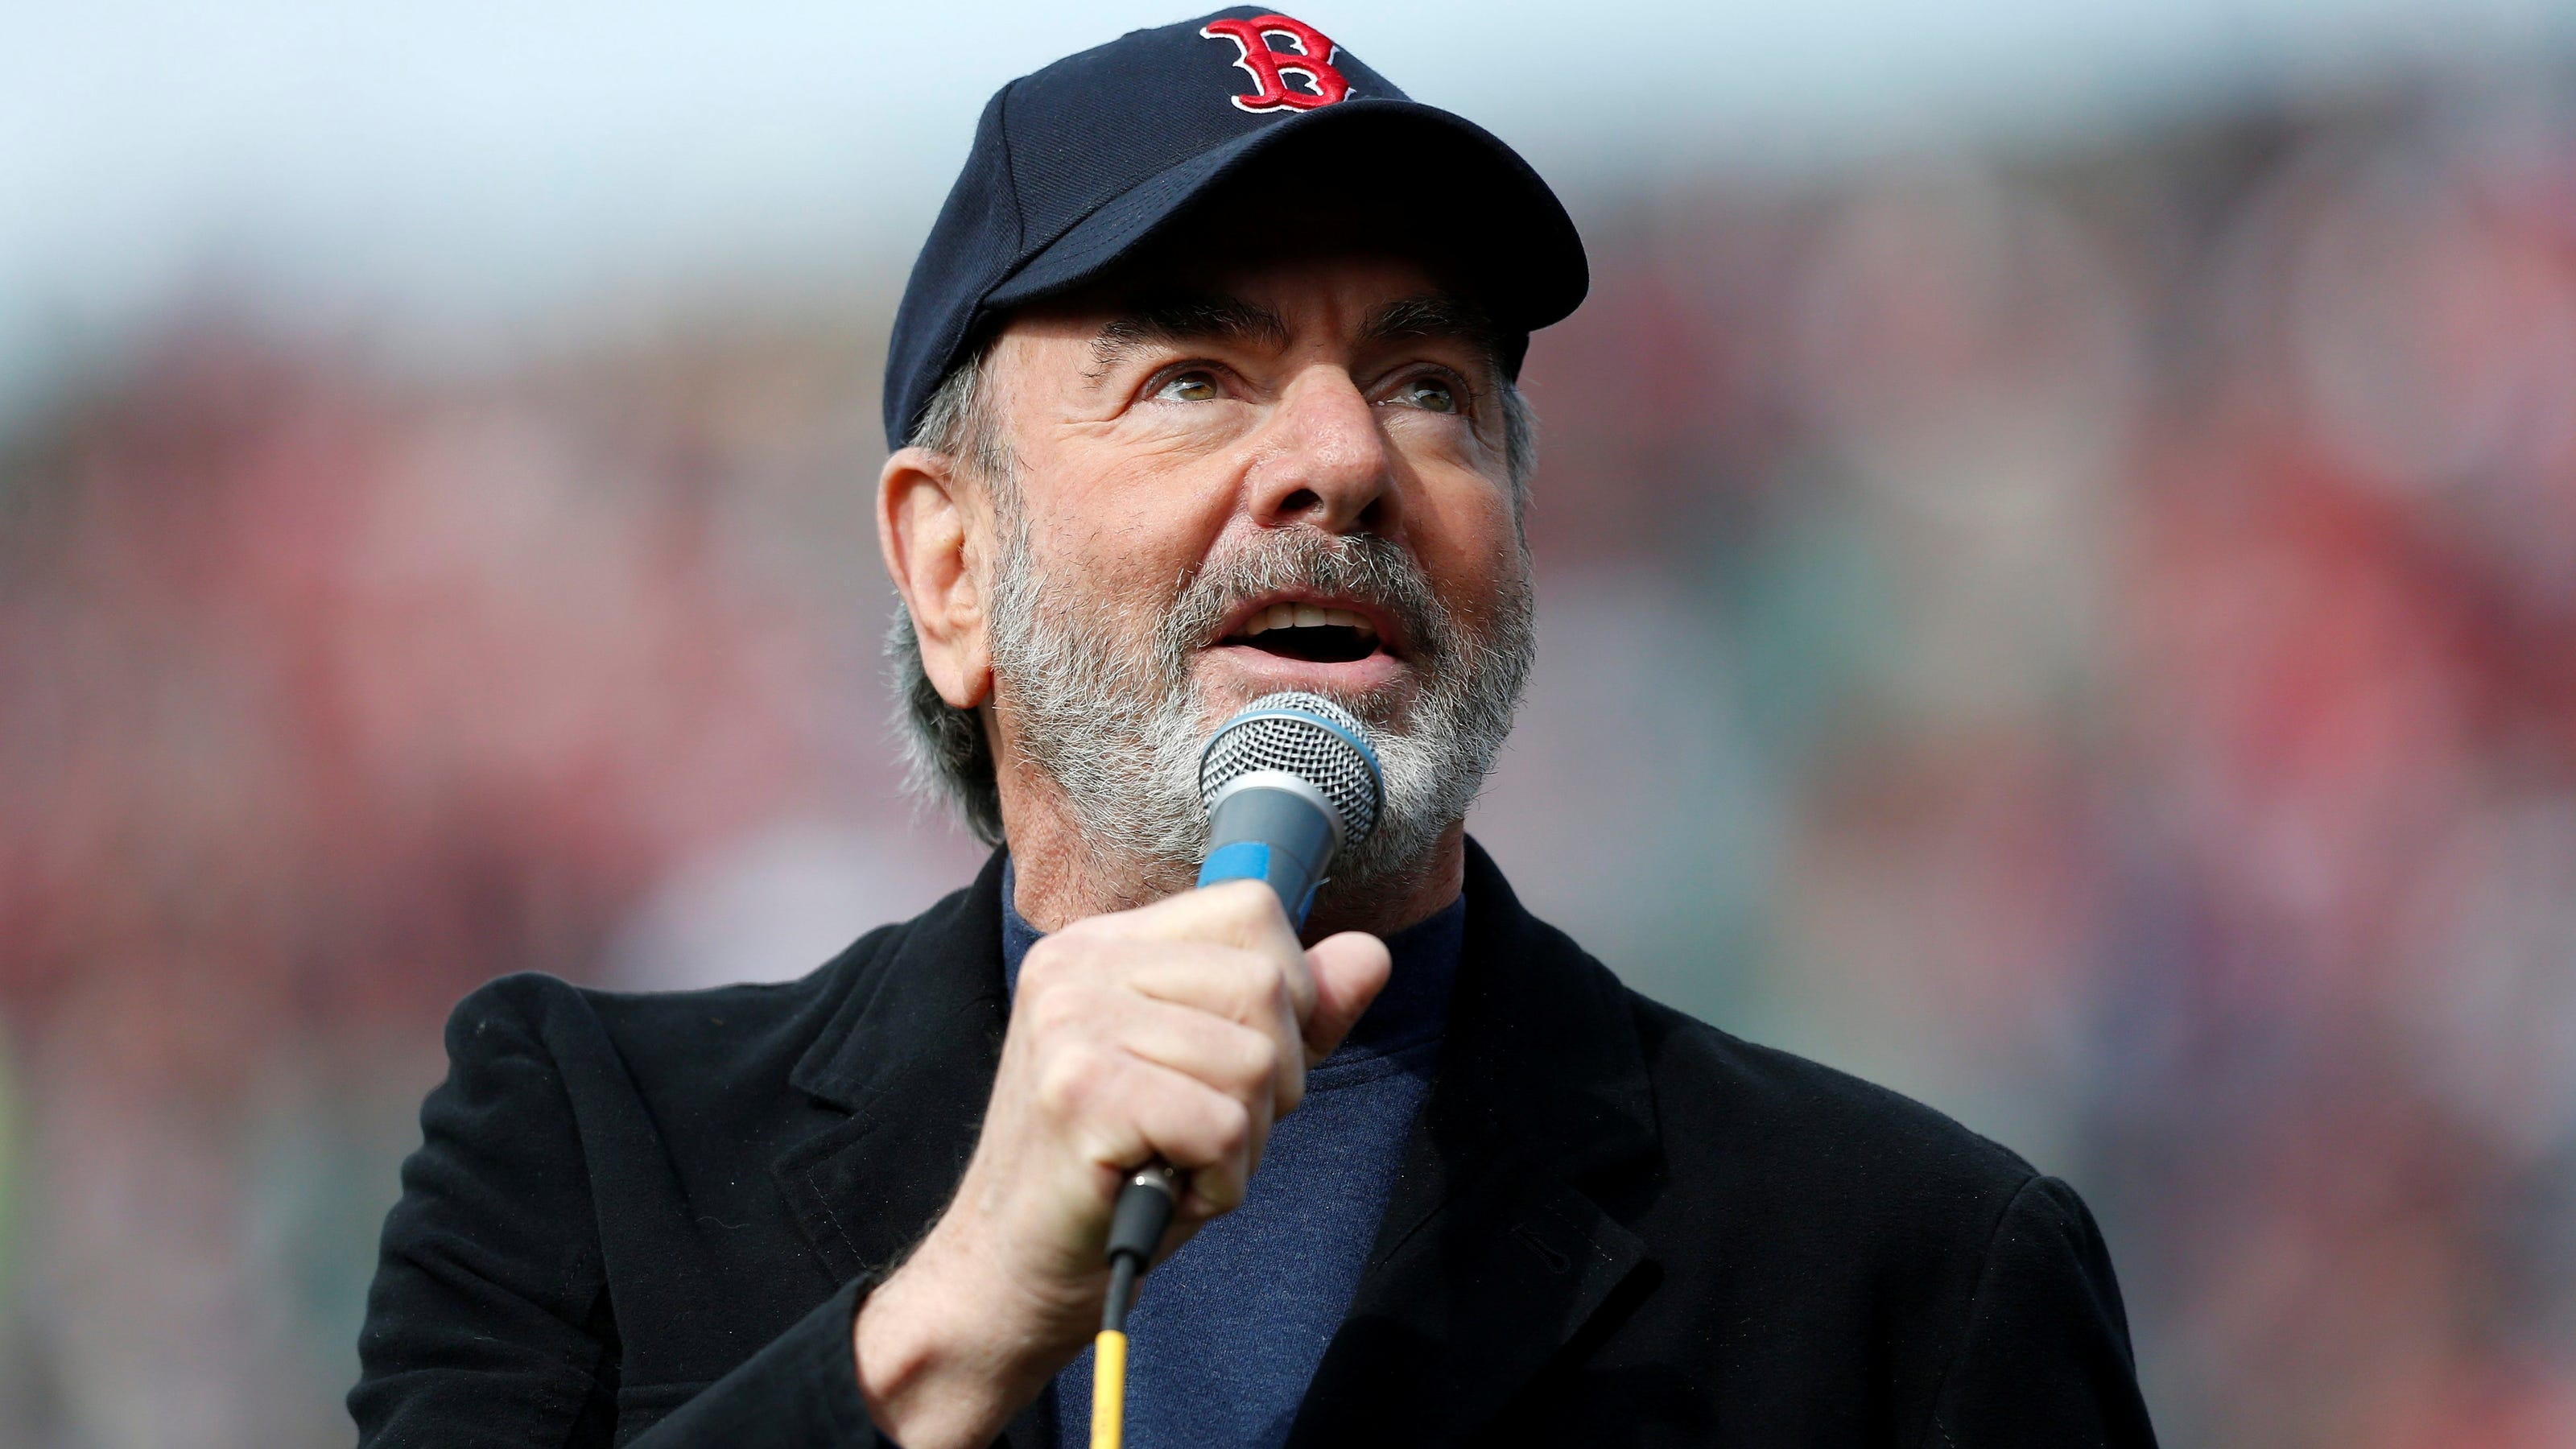 Neil Diamond's 'Freedom Song' will ring out